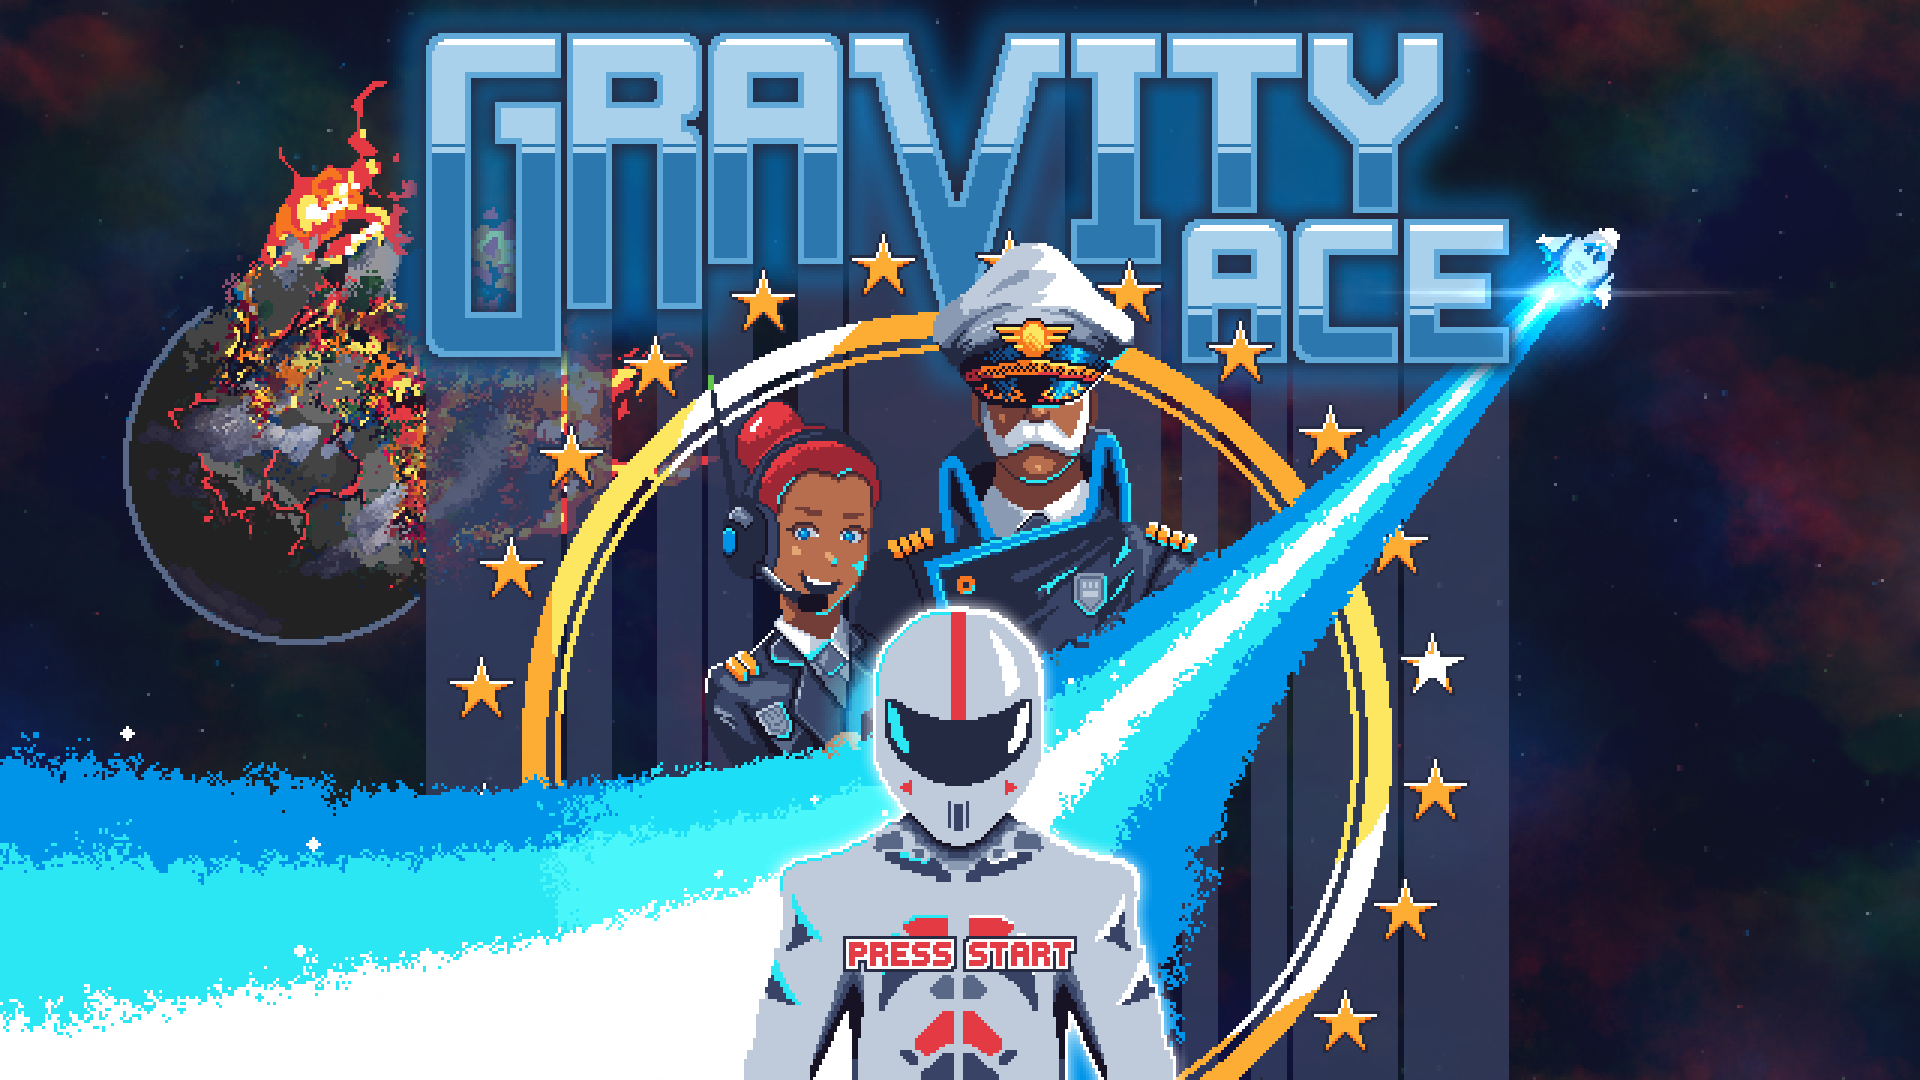 Gravity Ace - Released in October 2020 (early access) - Platforms: Windows, Linux